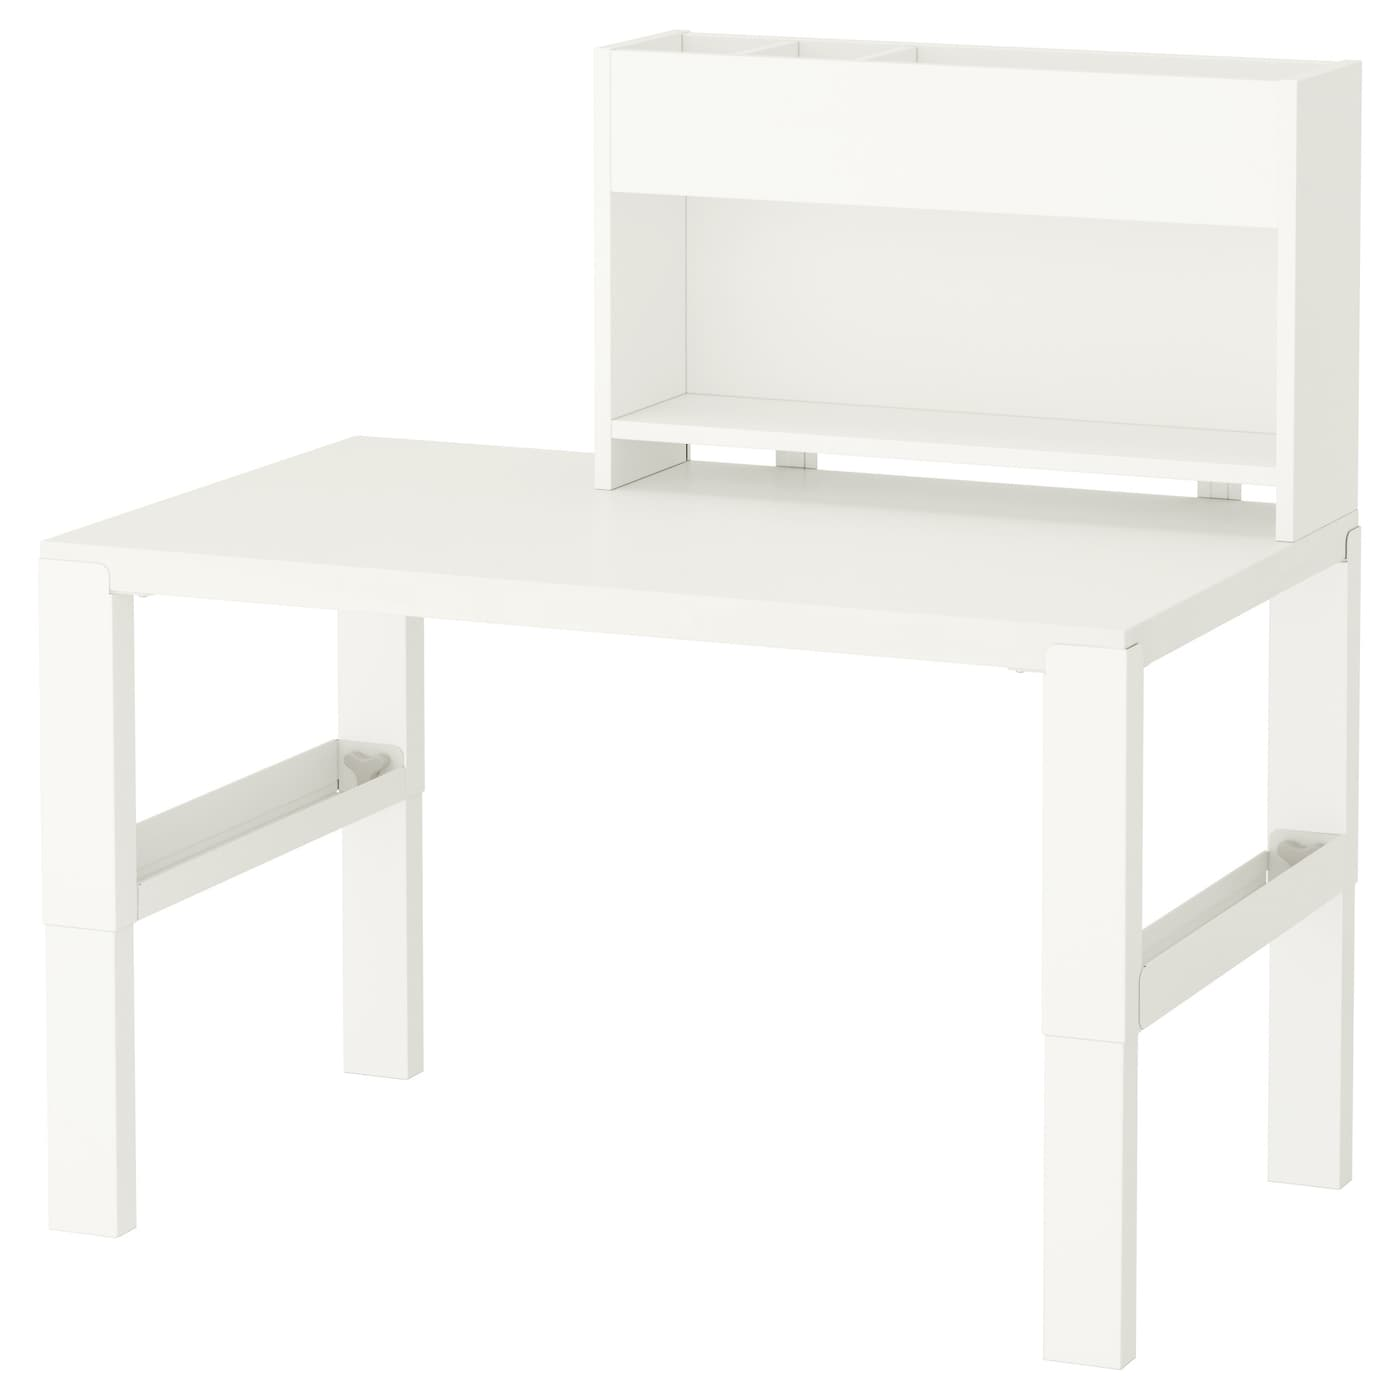 Height adjustable desk for rising creatives